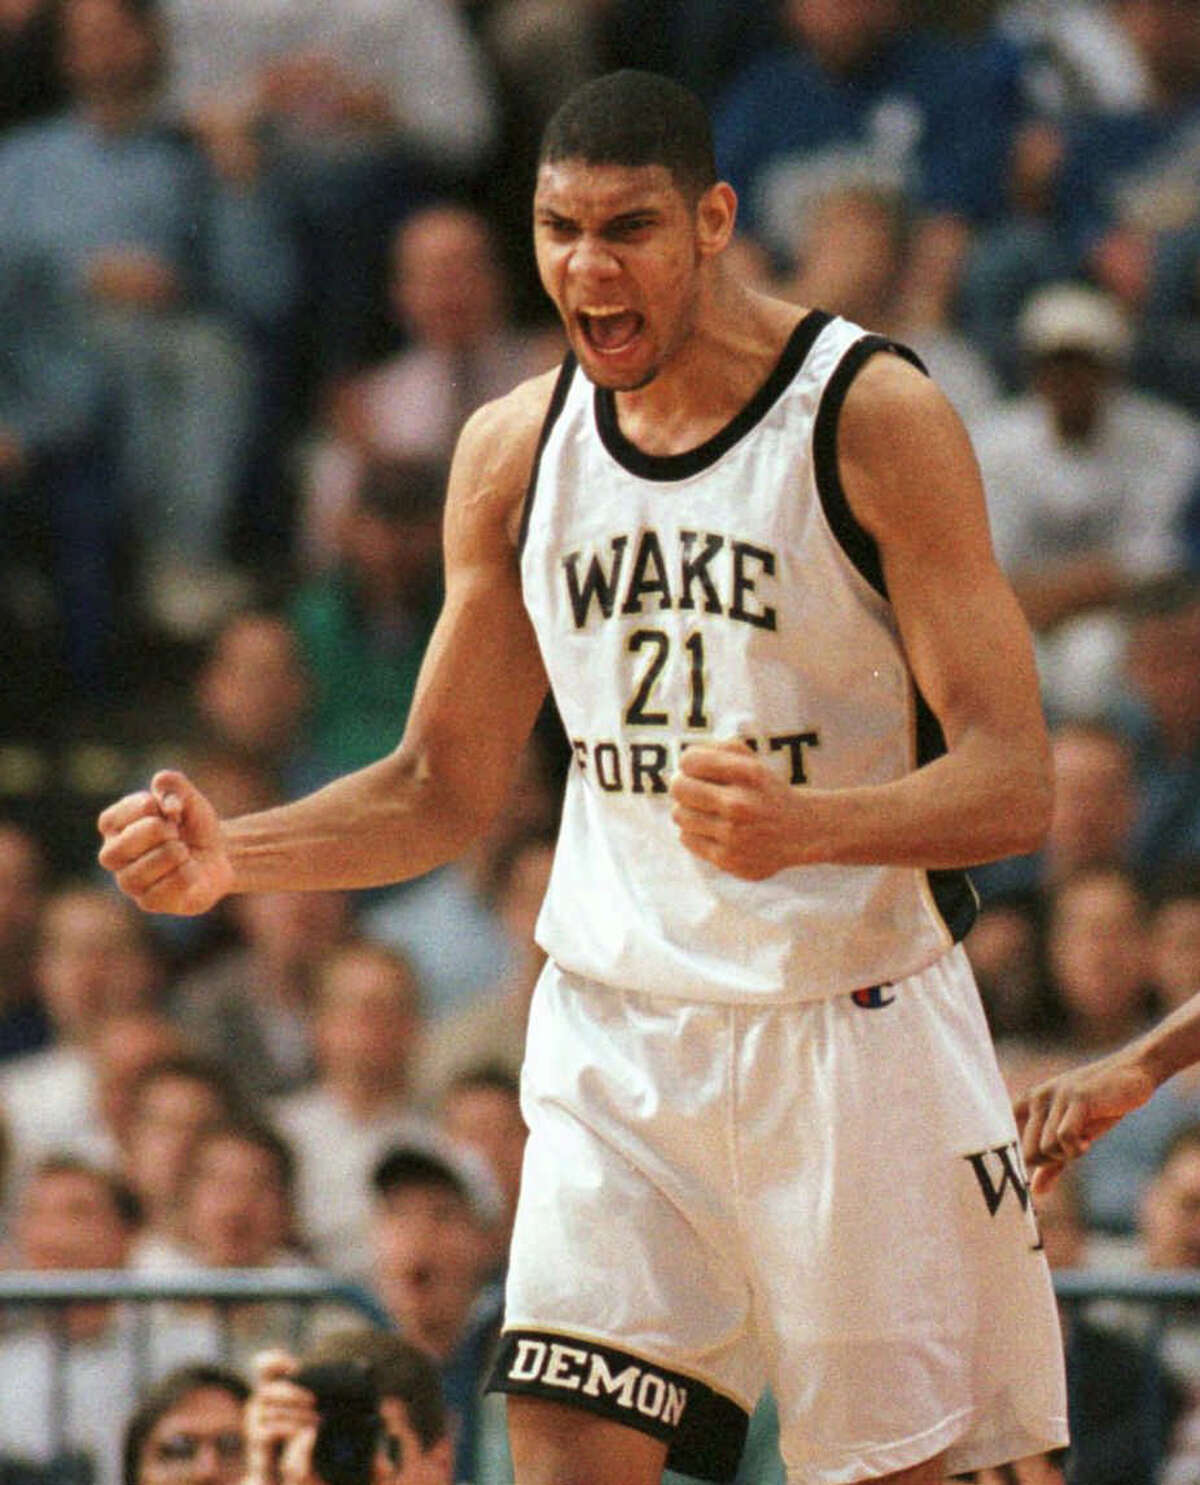 Tim Duncan 1996 Wake Forest's Tim Duncan reacts after making a shot to tie the score in their game against Louisville in the NCAA Midwest Regionals in Minneapolis on Thursday, March 21, 1996. Duncan was fouled on the shot and his subsequent free throw put Wake Forest ahead to win, 60-59.